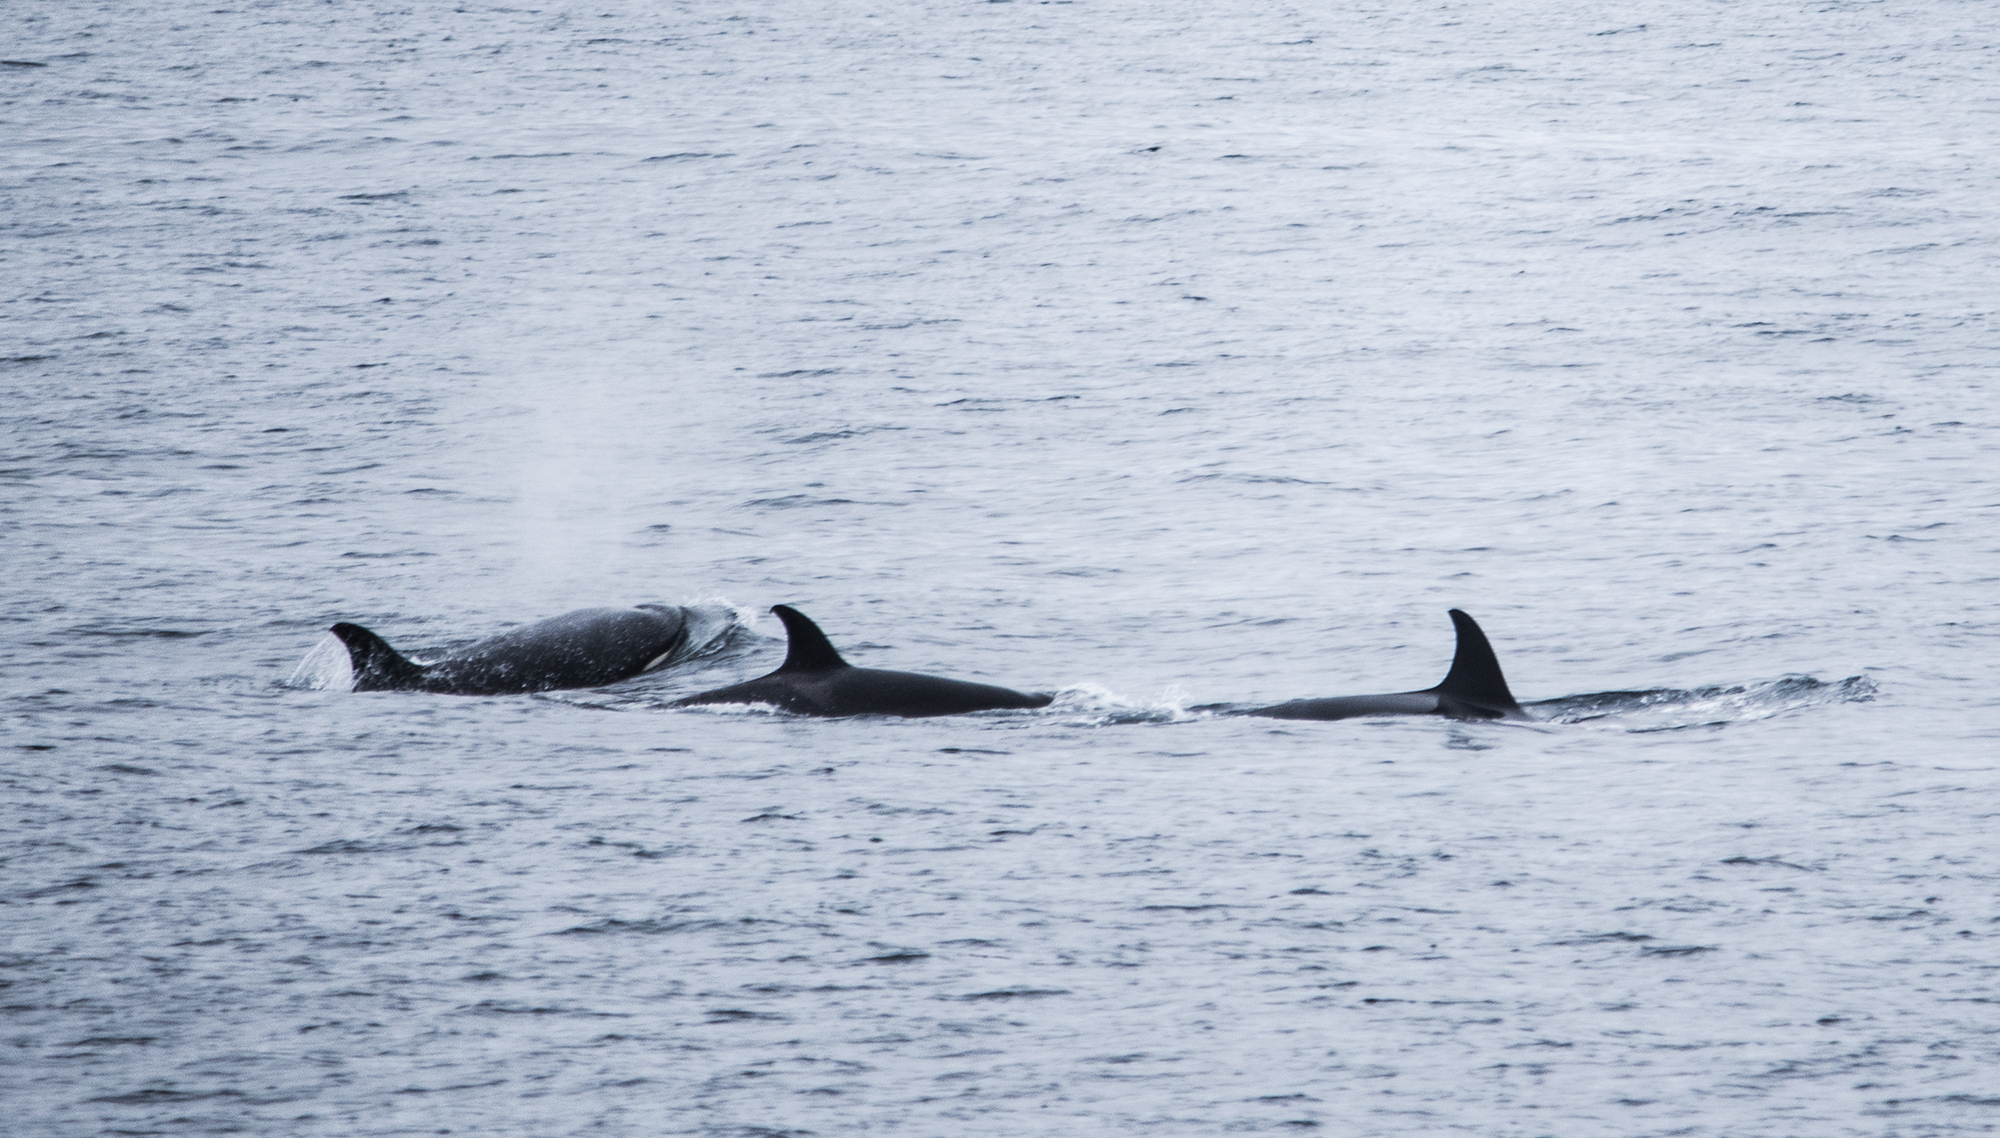 Orcas and Great Whites in One Trip?!